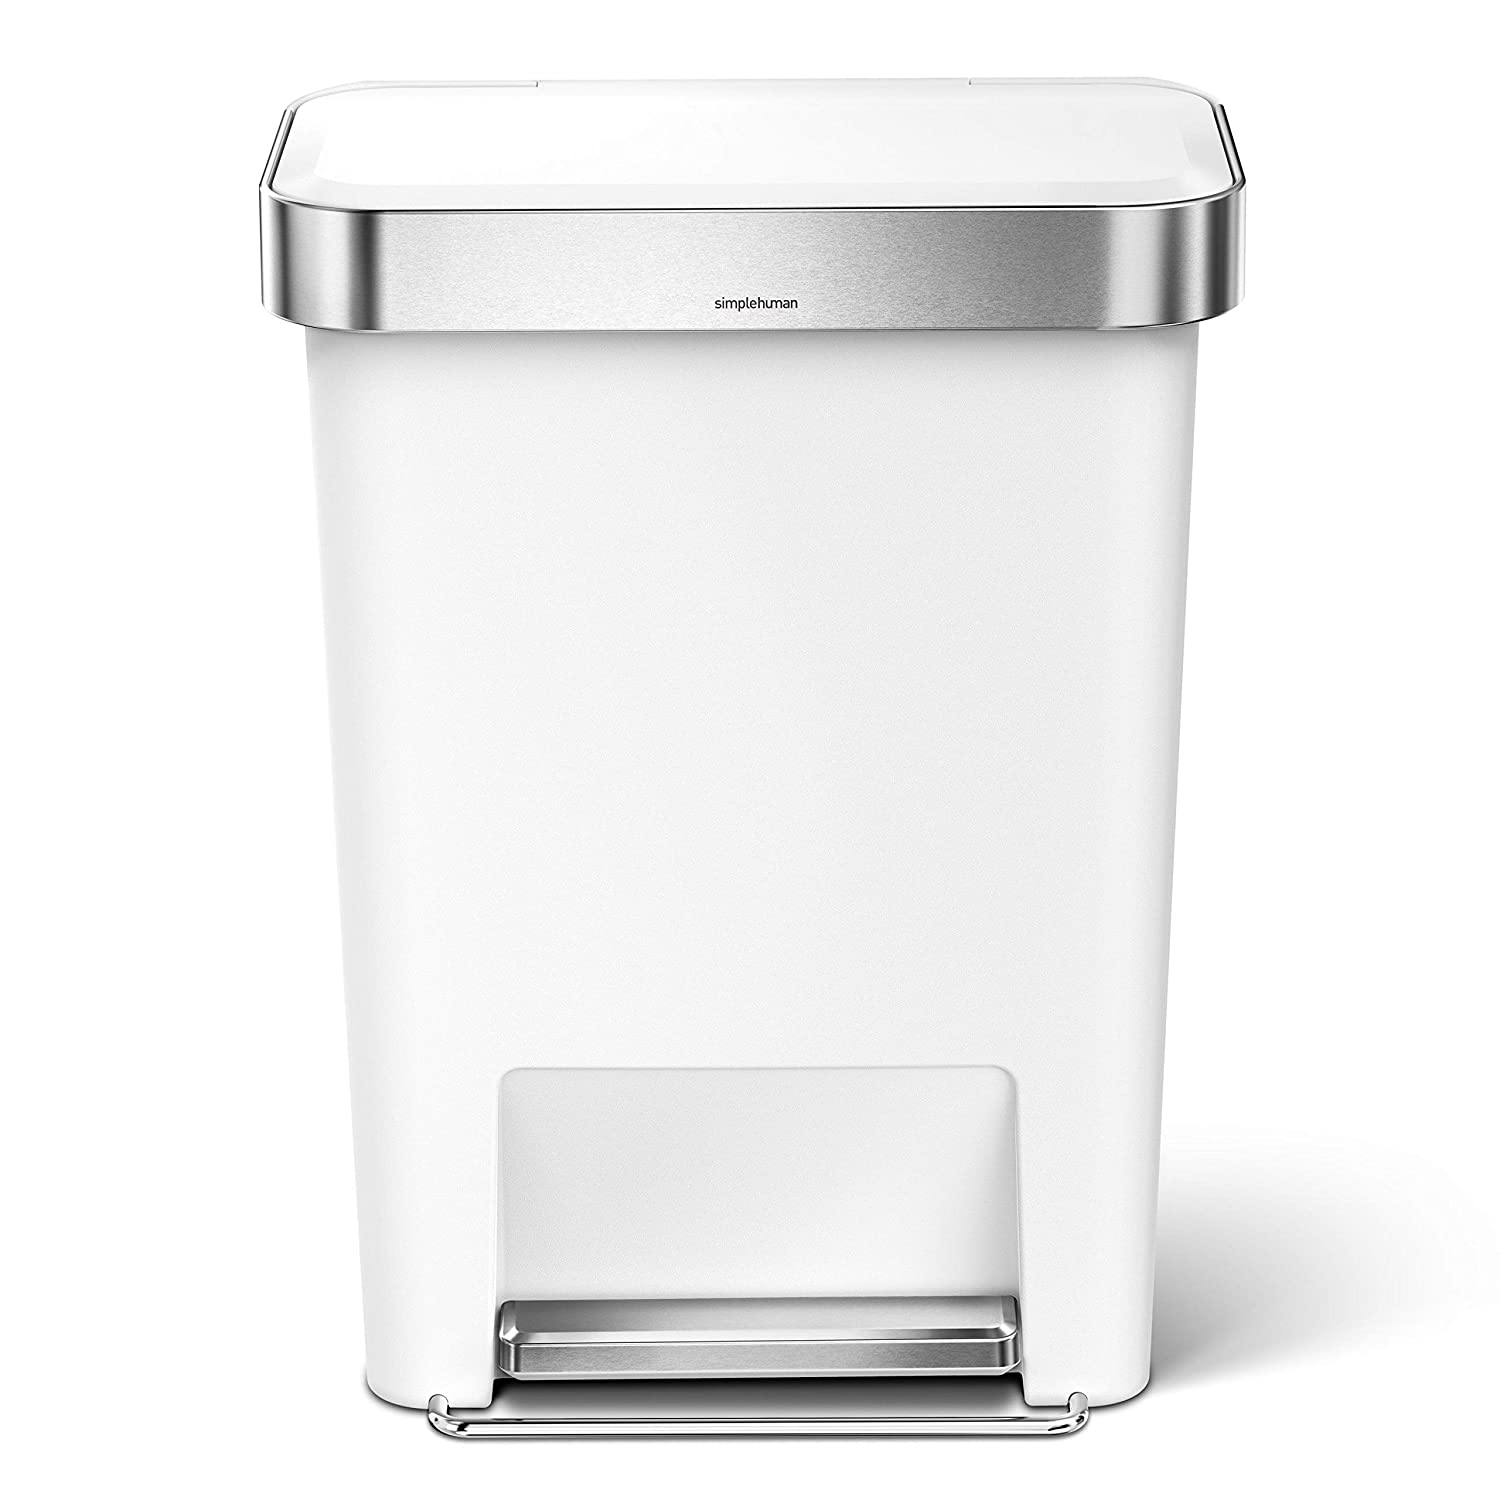 Plastique 32 x 47 x 63,5 cm Simple Human CW1387CB 45L Liner Pocket Bin Blanc